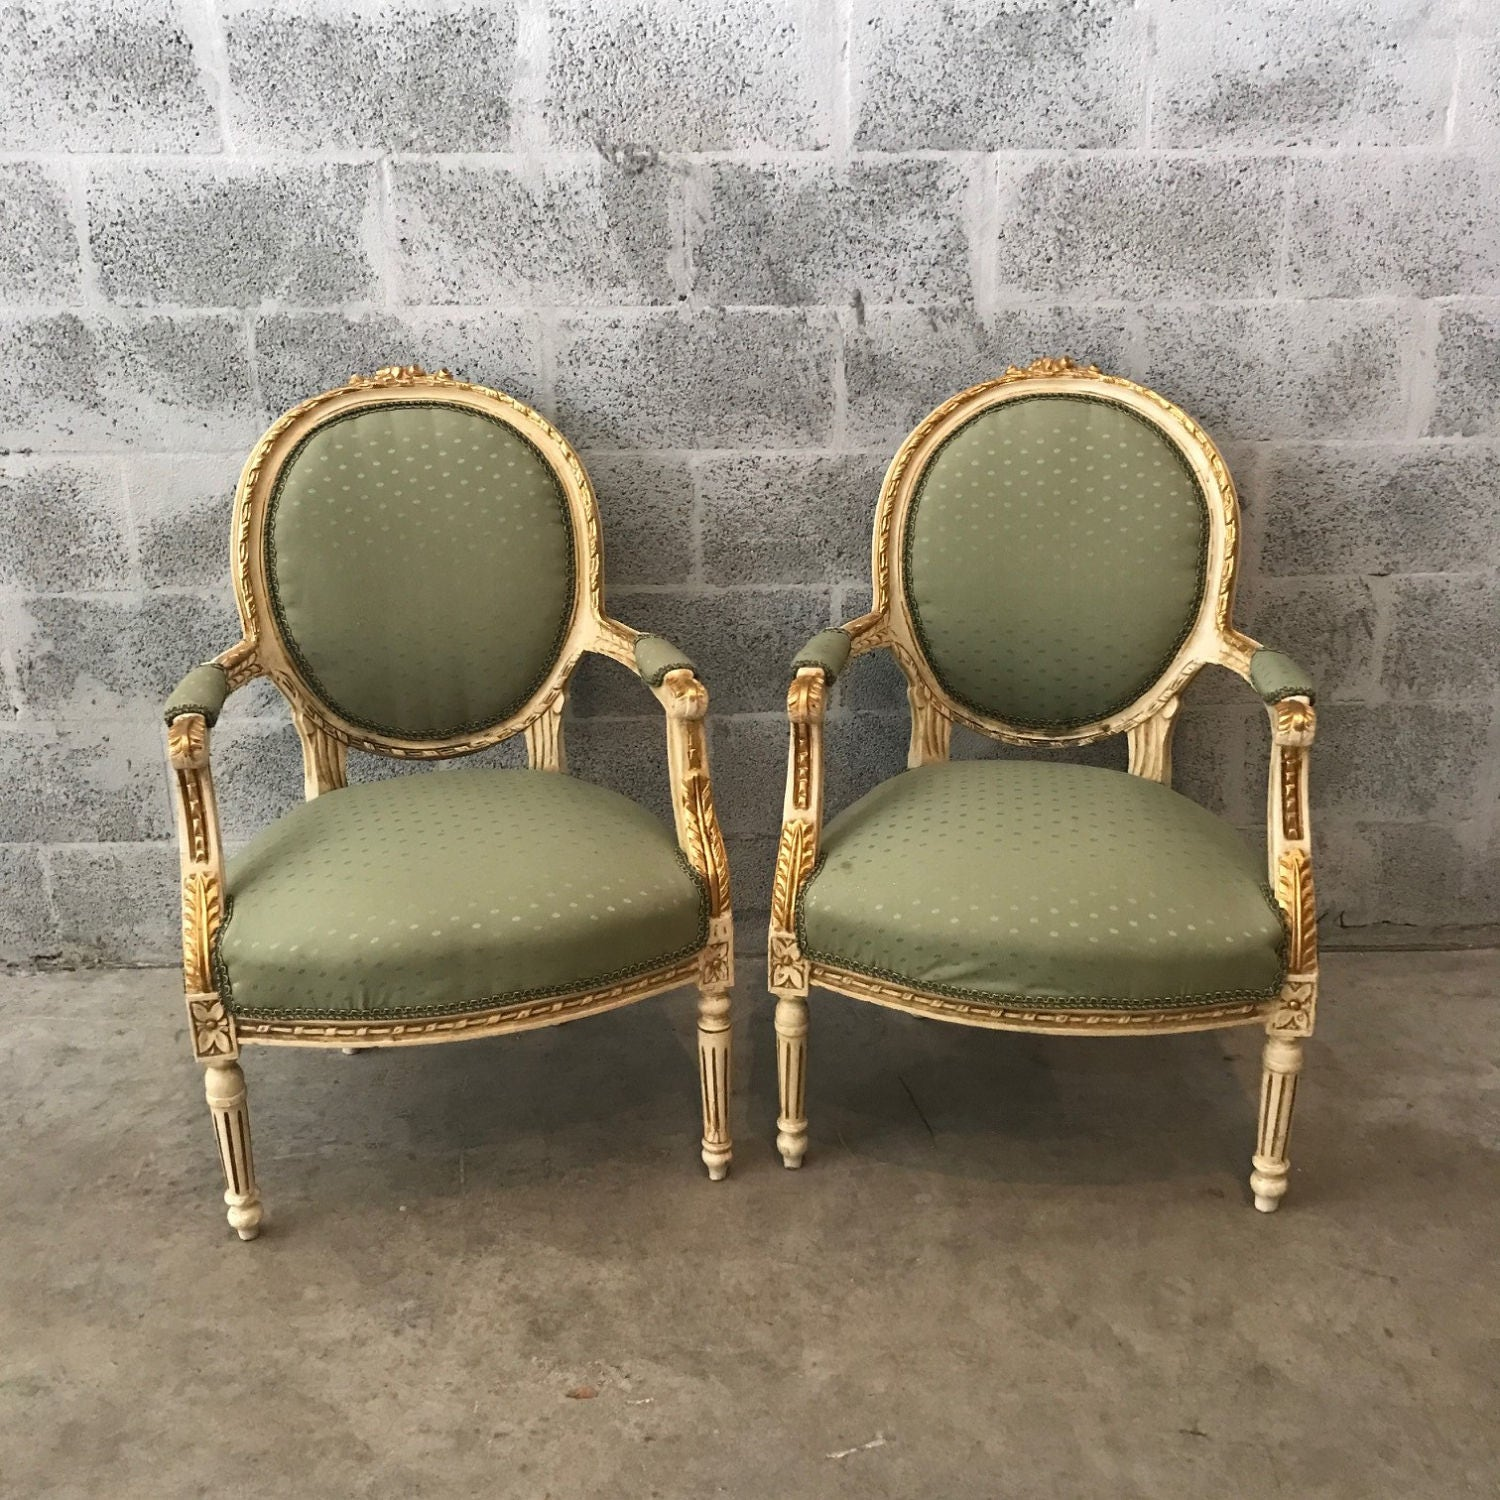 Antique french chair - French Chair French Louis Xvi Style Antique Furniture 4 Chairs Avail French Fauteuil Frame Cream Gold Leaf Rococo Furniture Baroque Green